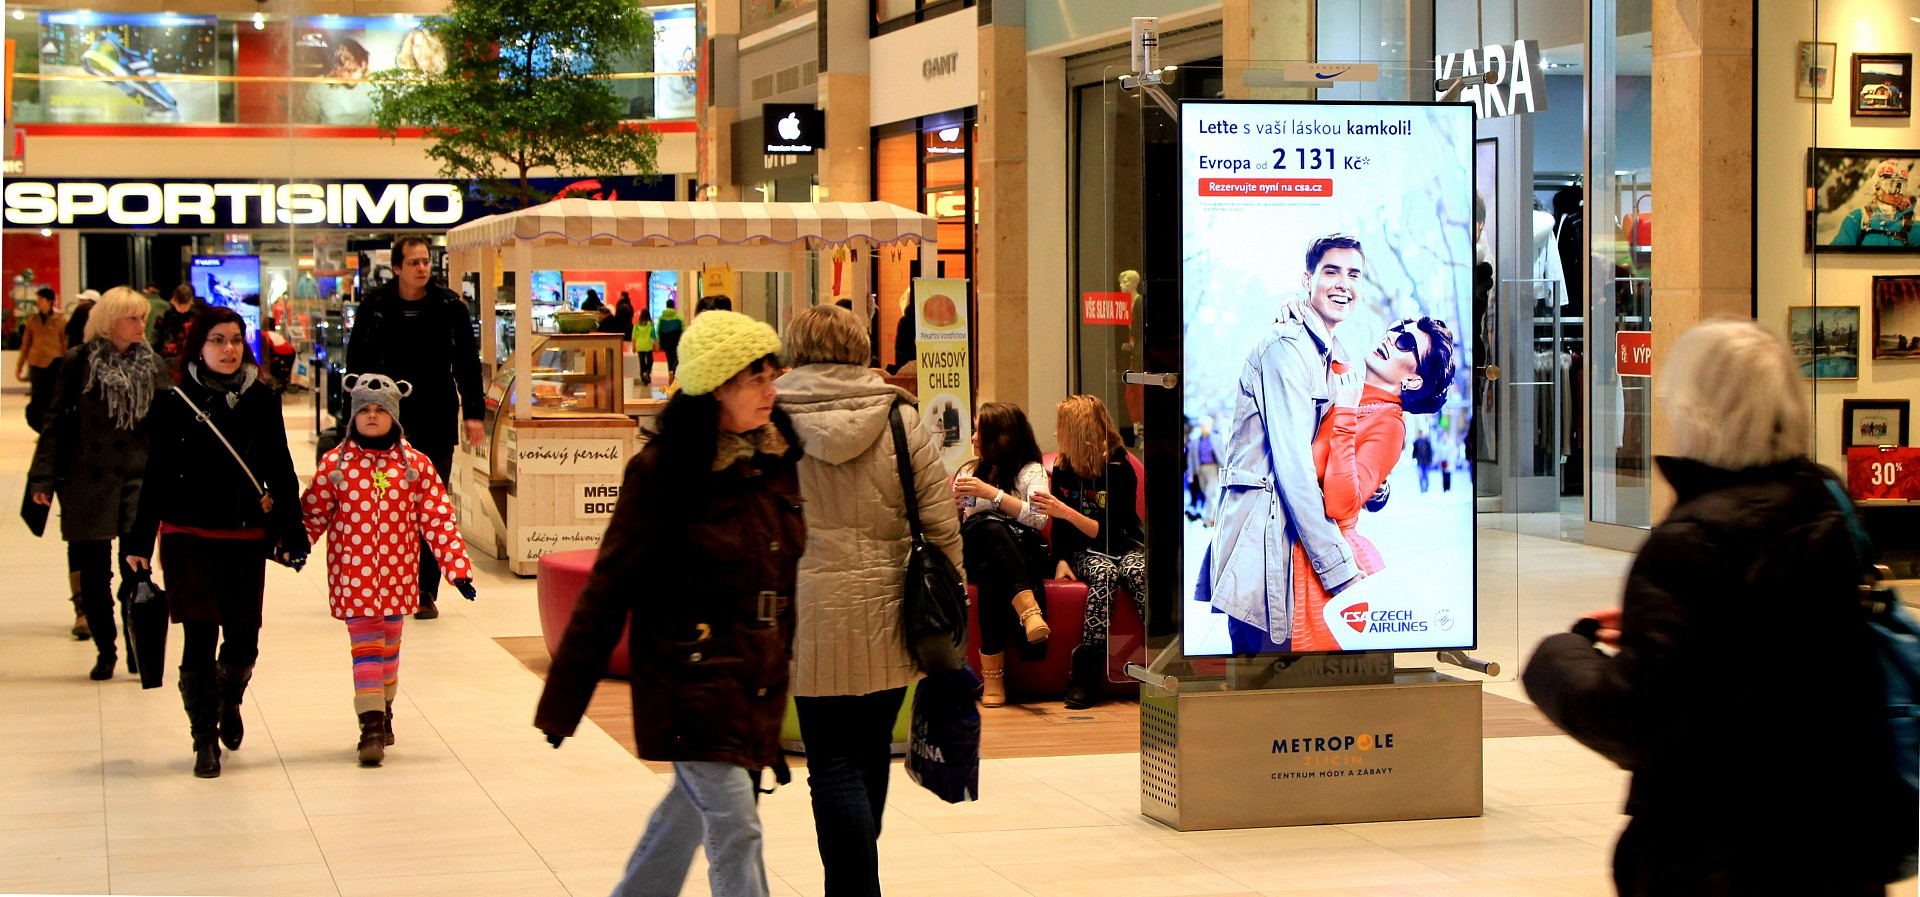 Czech airlines on digiCLV panels in shopping centres